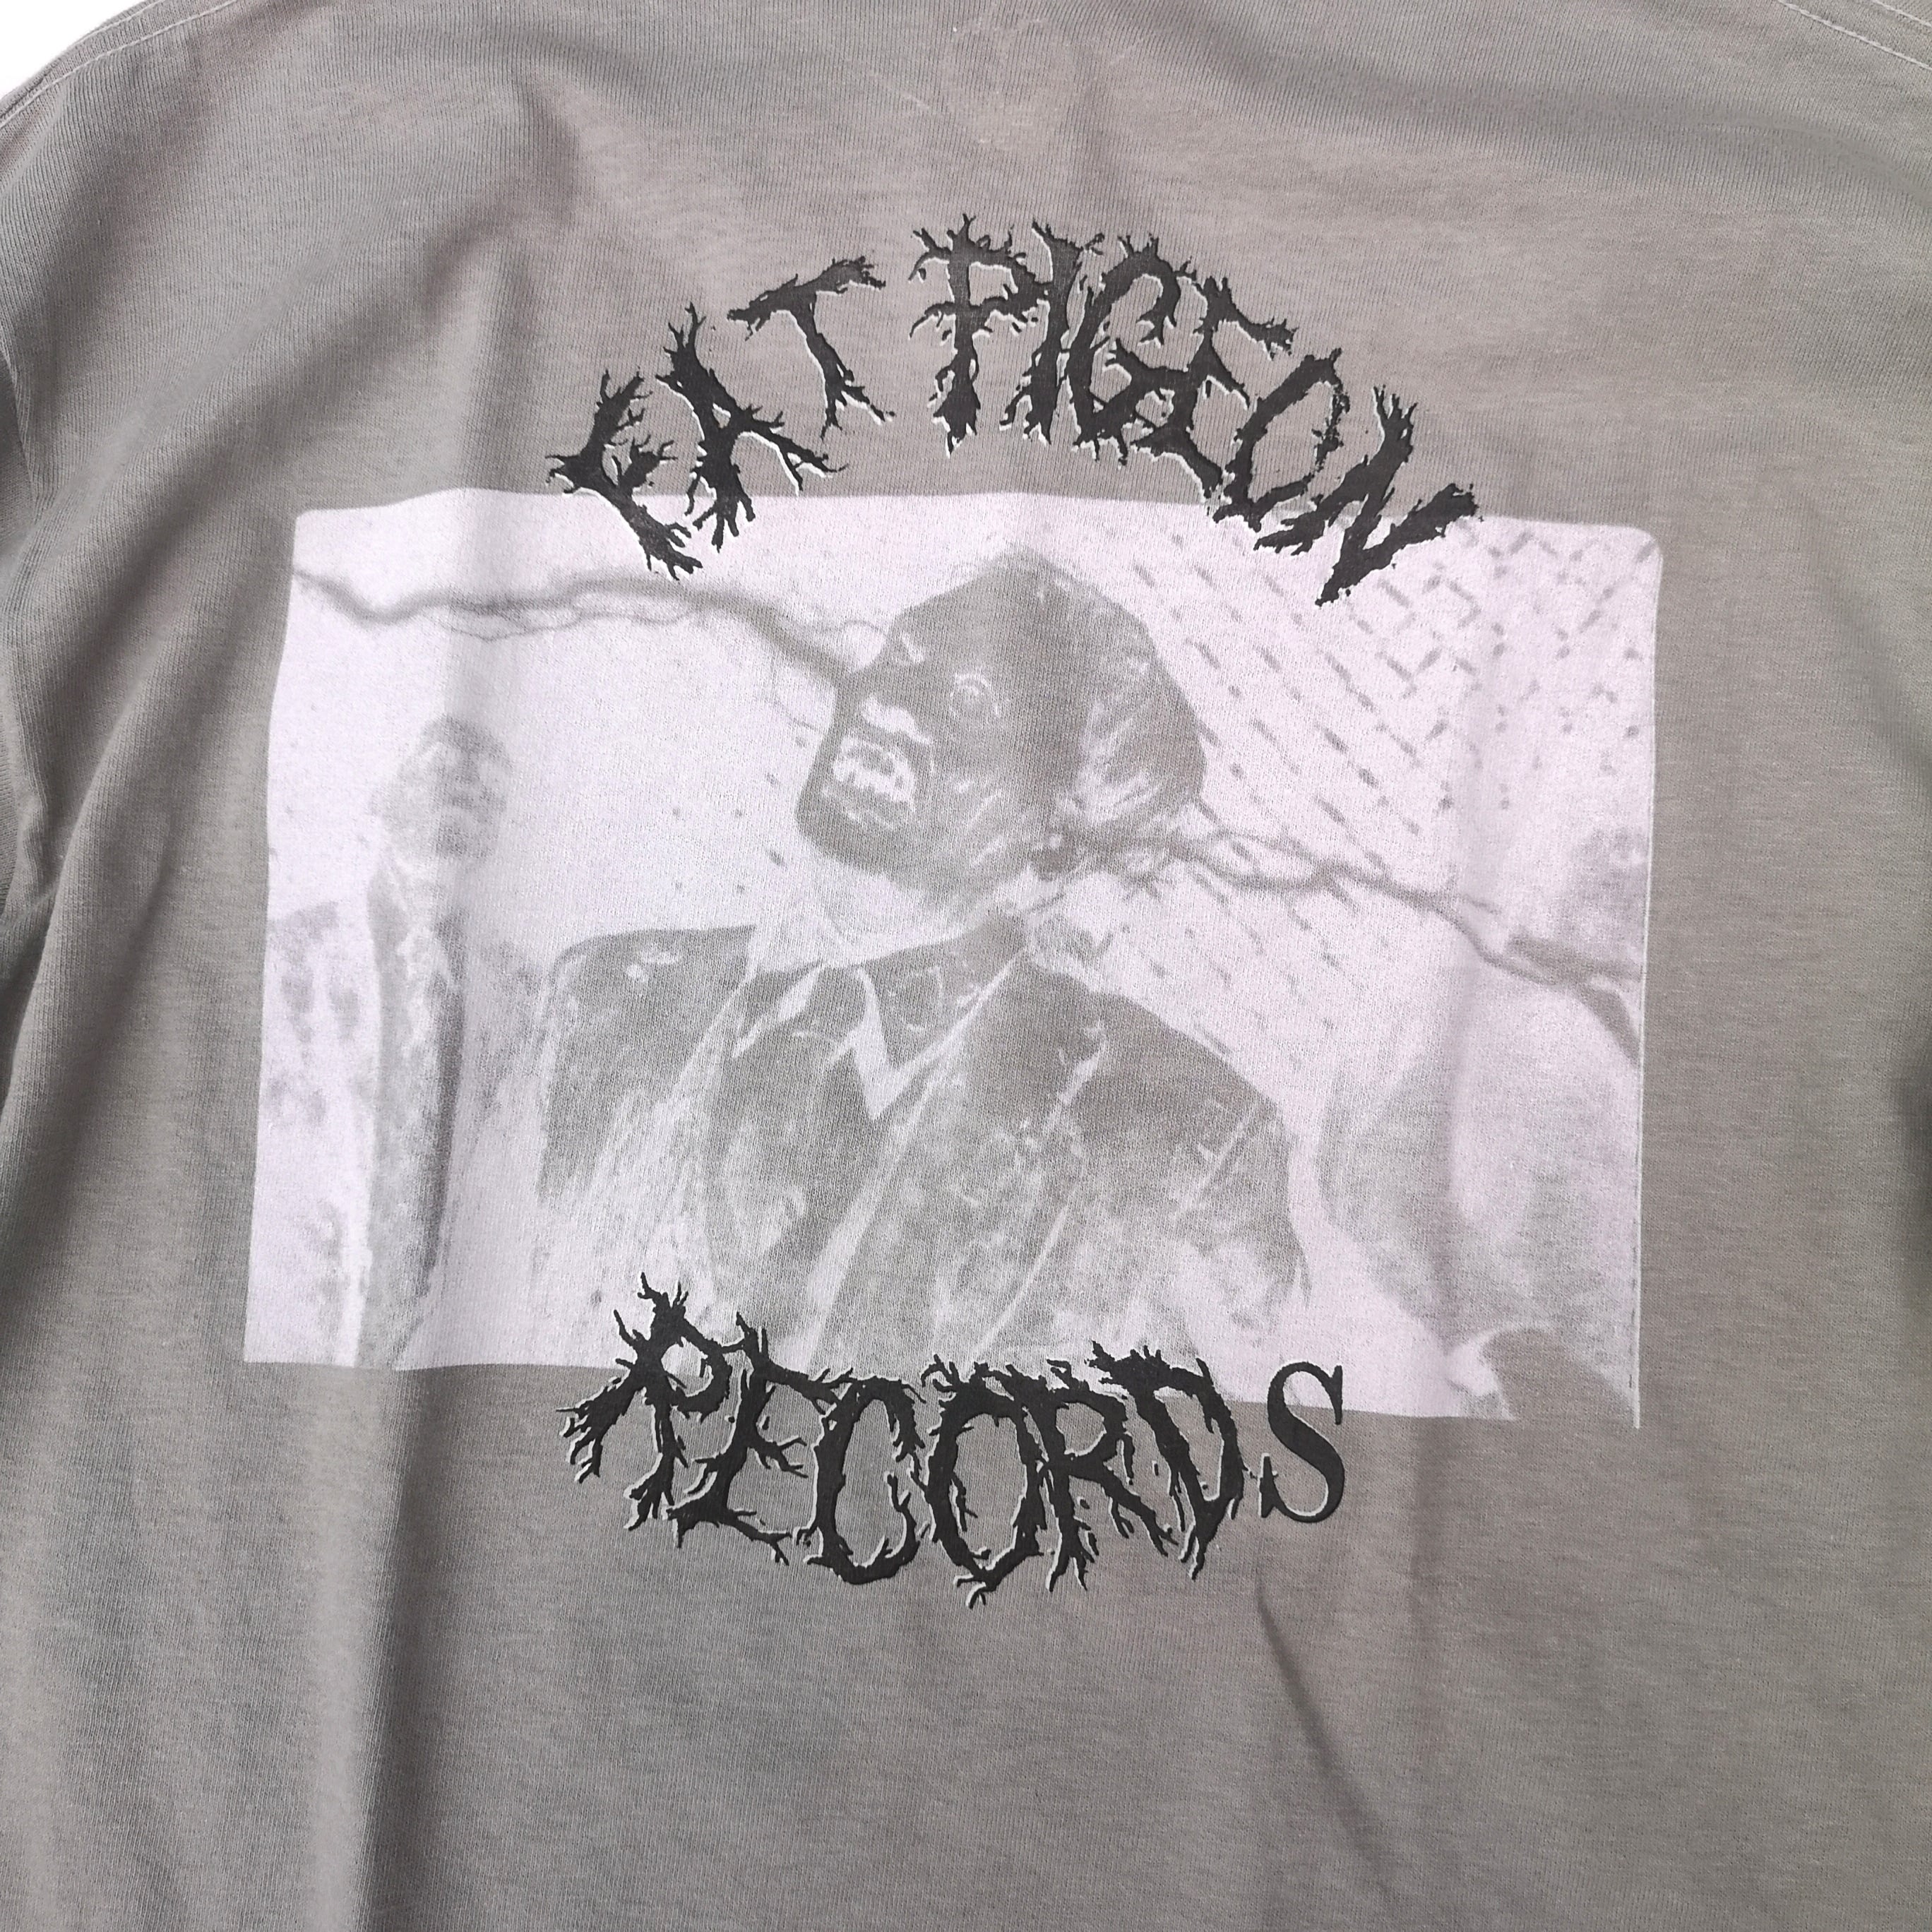 FAT PIGEON RECORDS TEE